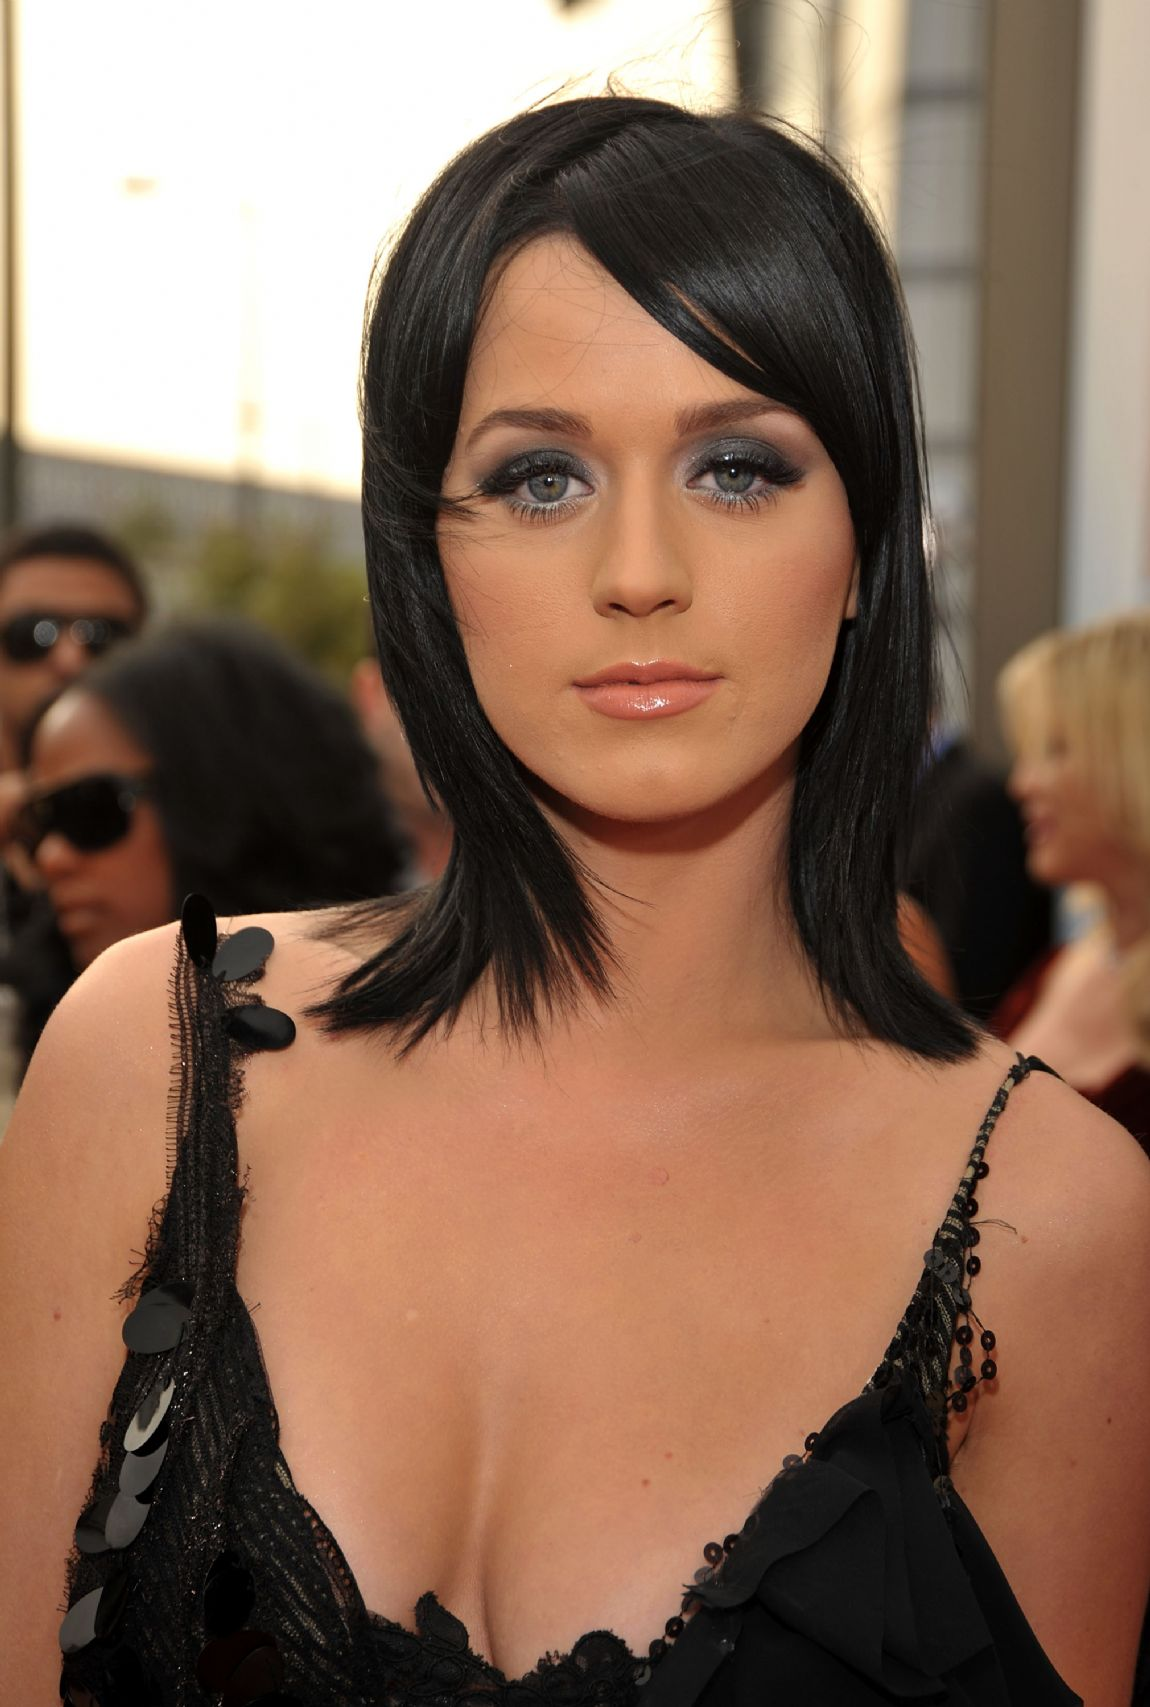 Katy Perry photo #142941